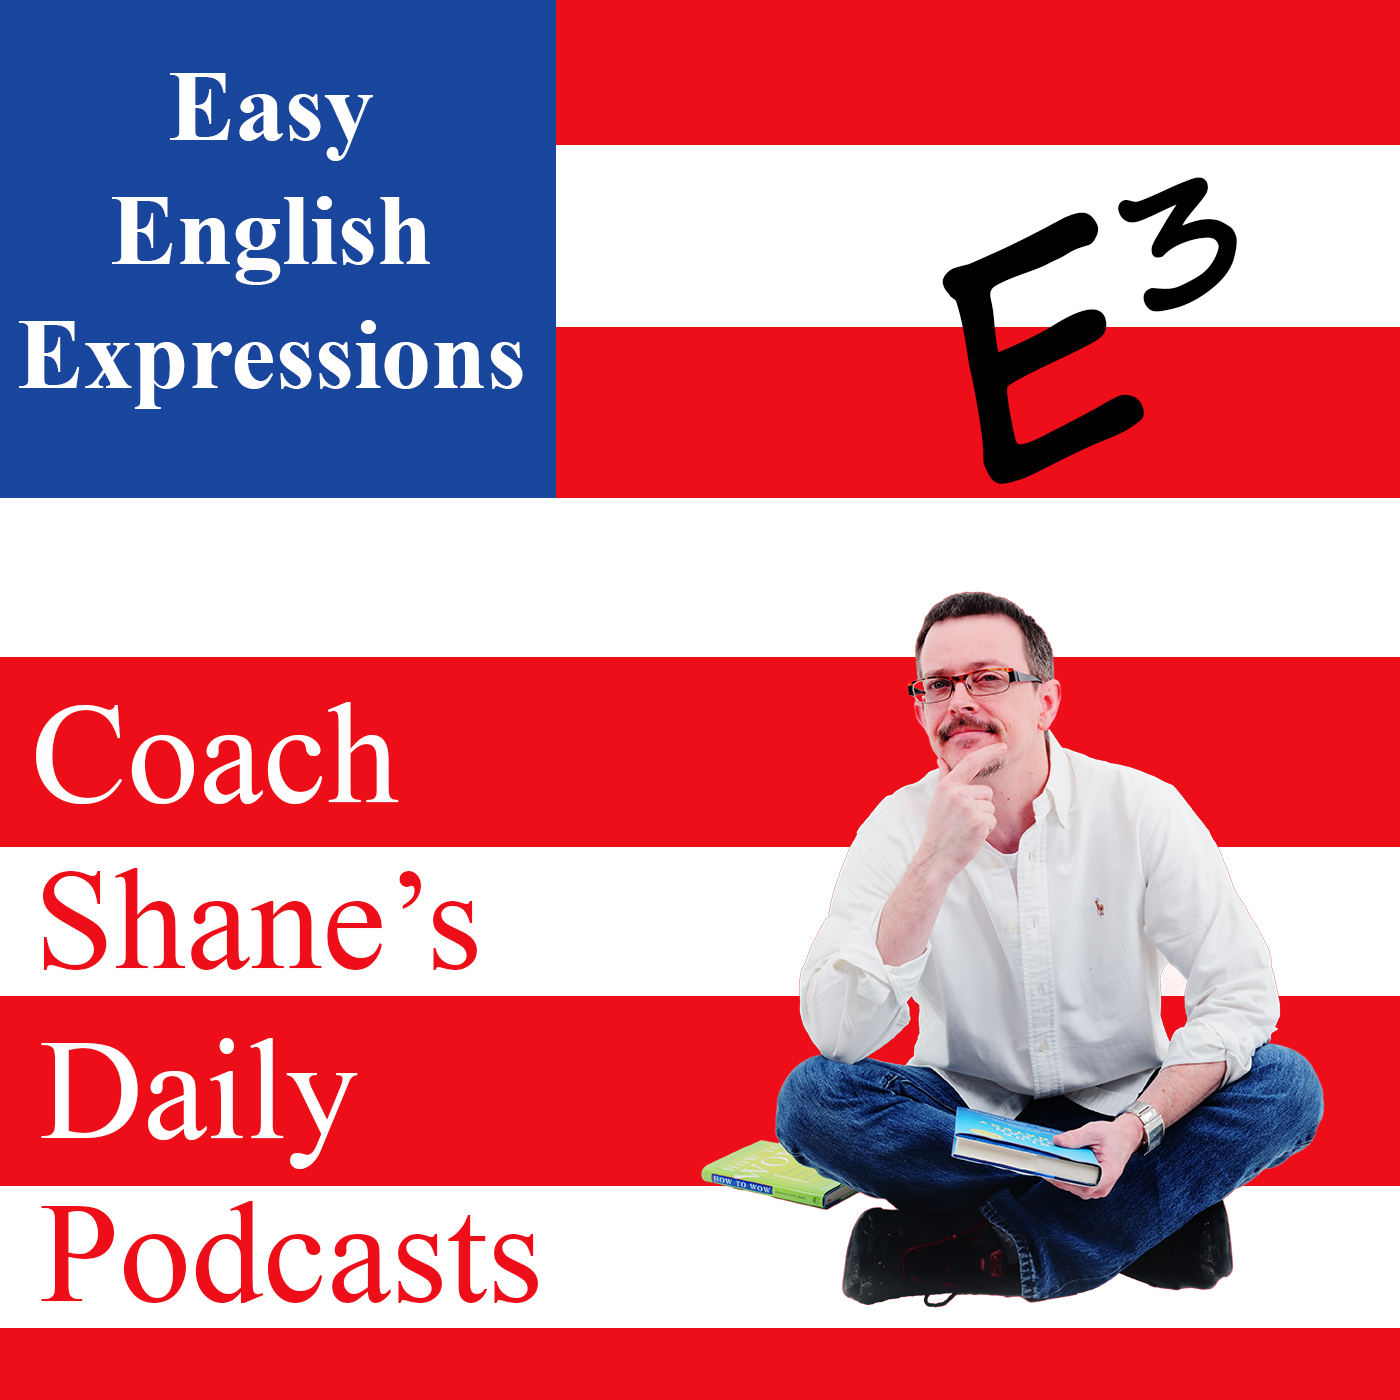 50 Daily Easy English Expression PODCAST—Keep me on my toes~